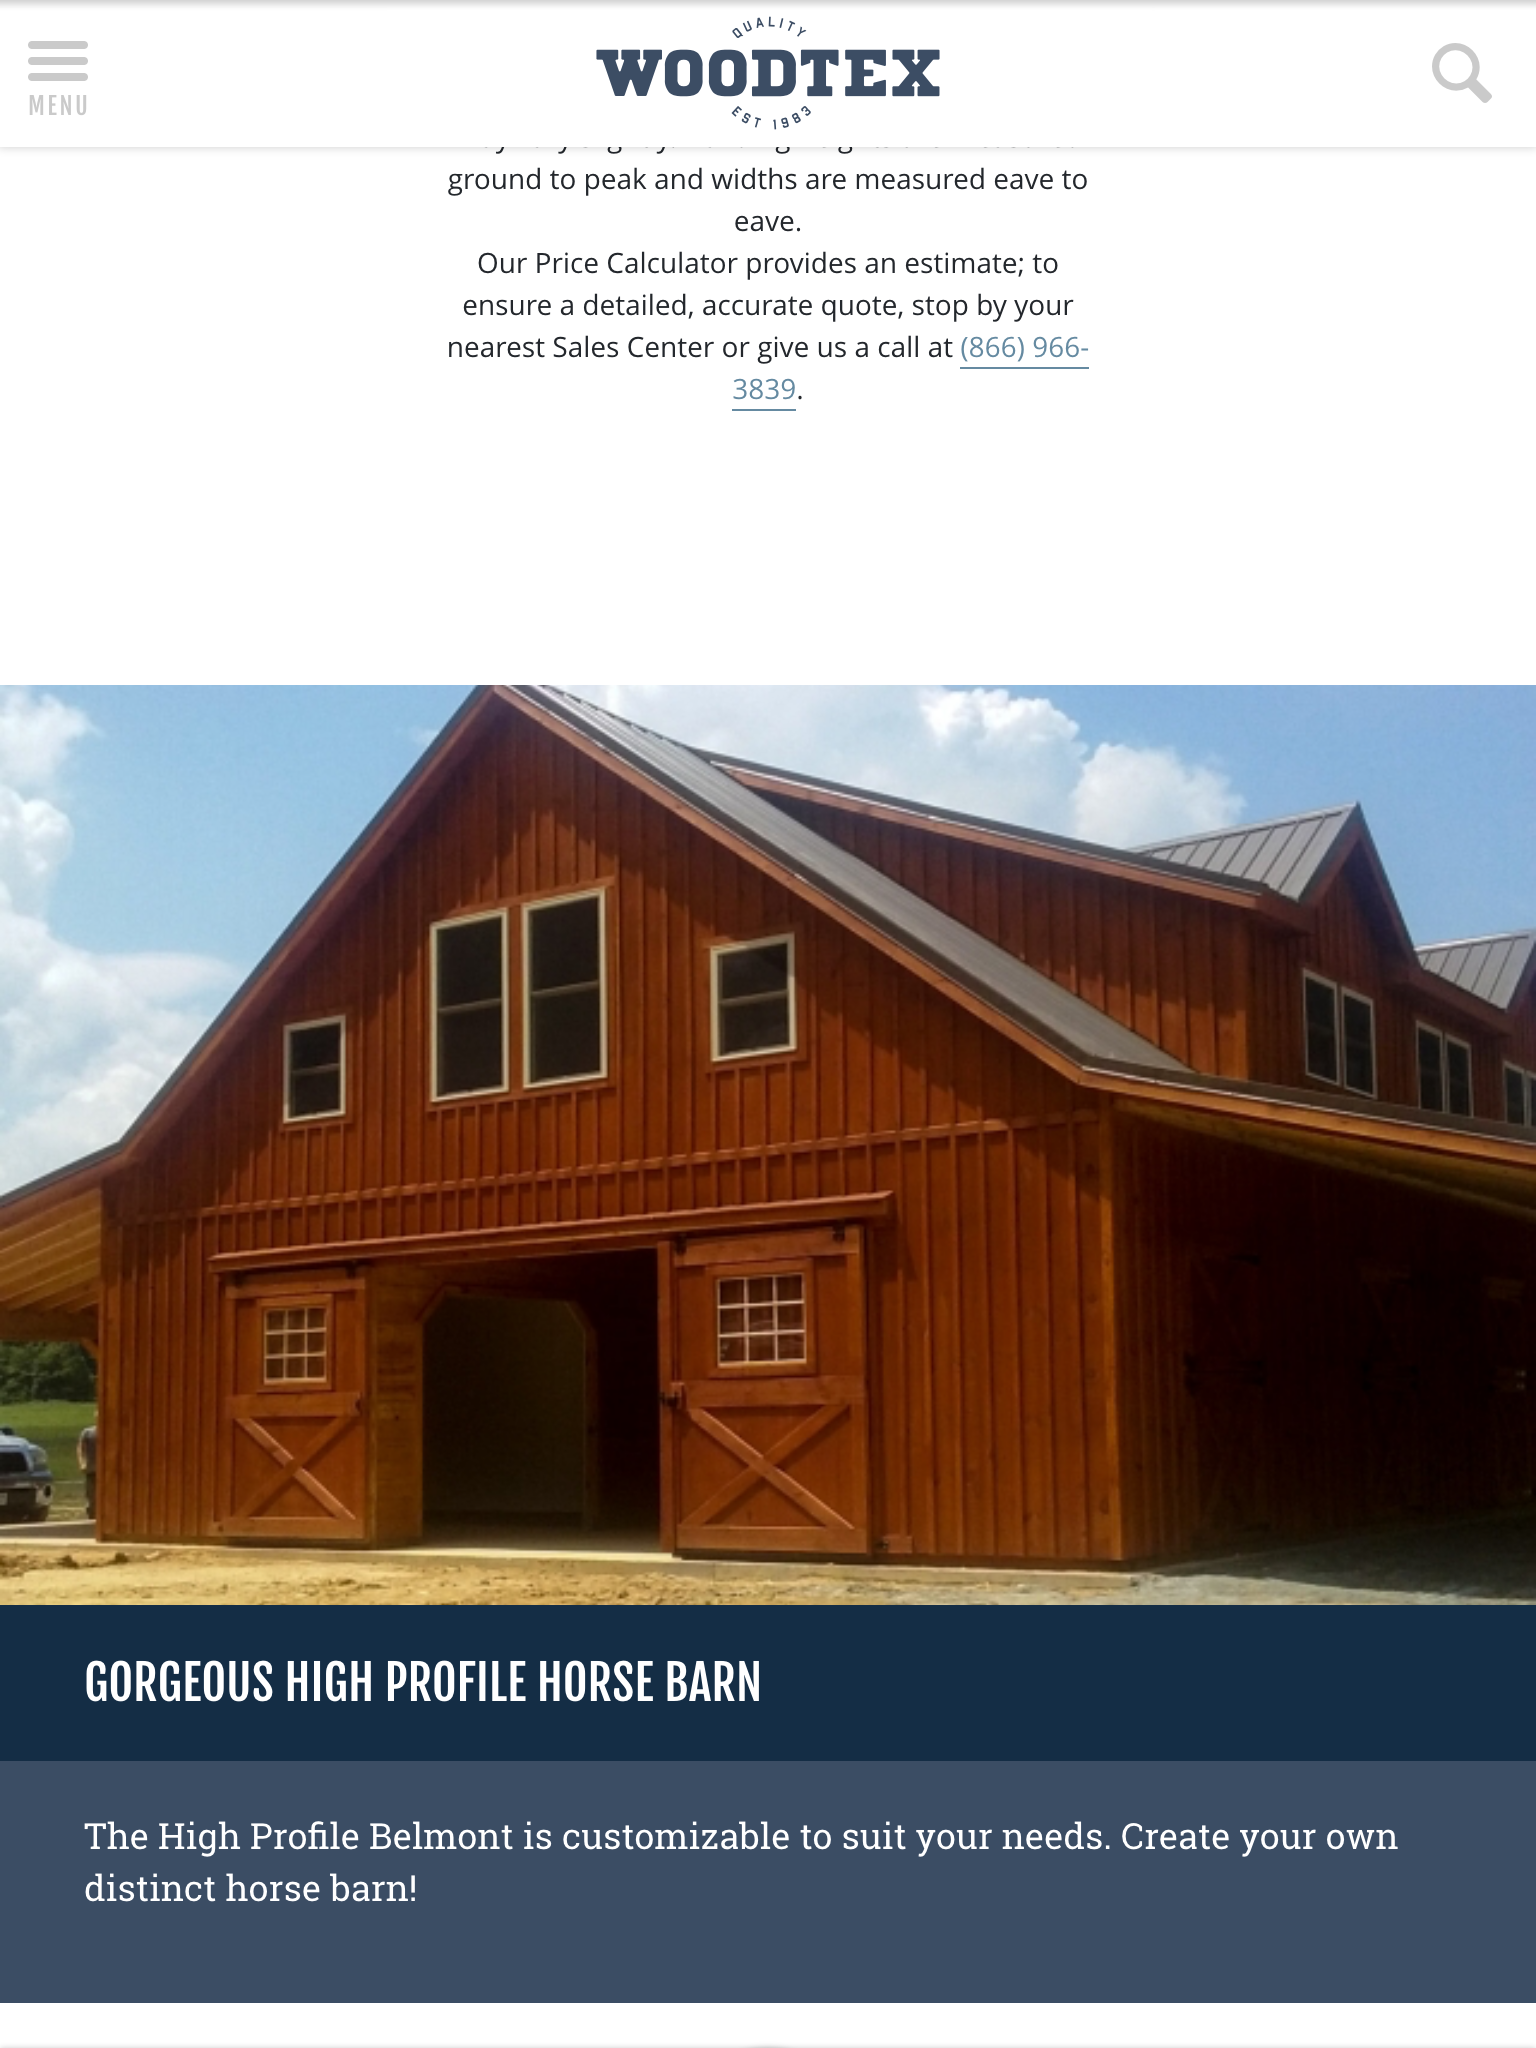 Pin by Ted Bear on Barns (With images) Horse barn, Price